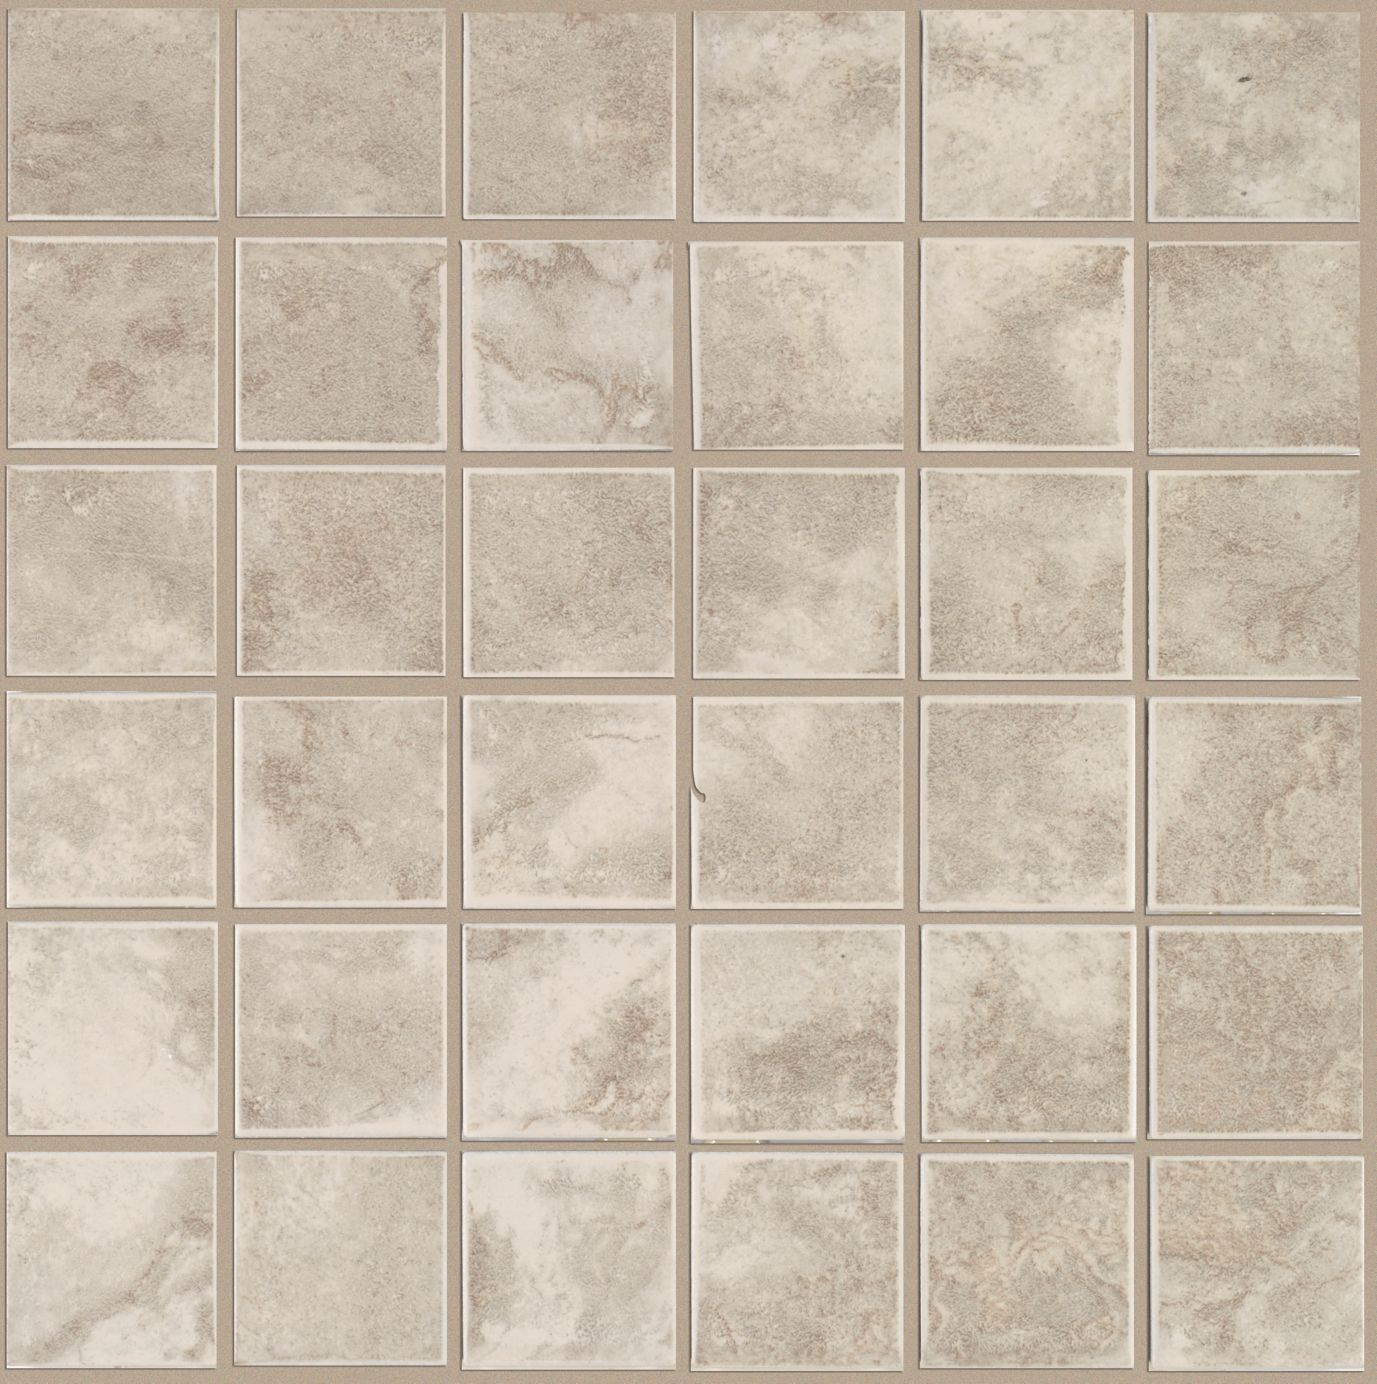 CeramicPorcelainTile PacardieWall T717F-PS03 GrayFlannel